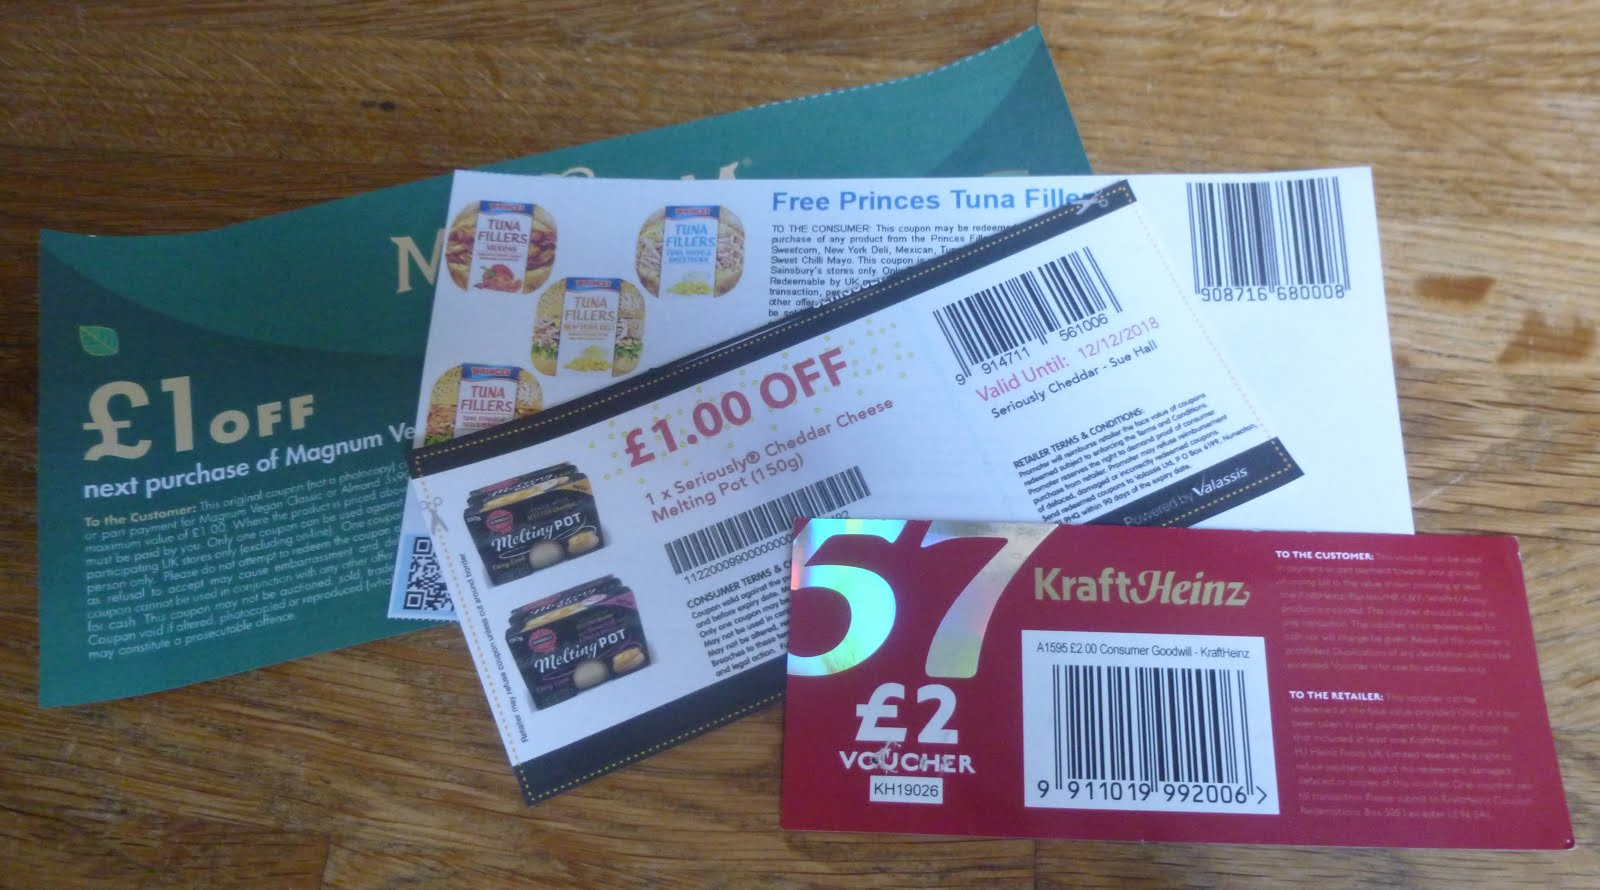 Challenge Three - Freebies, Vouchers and Coupons